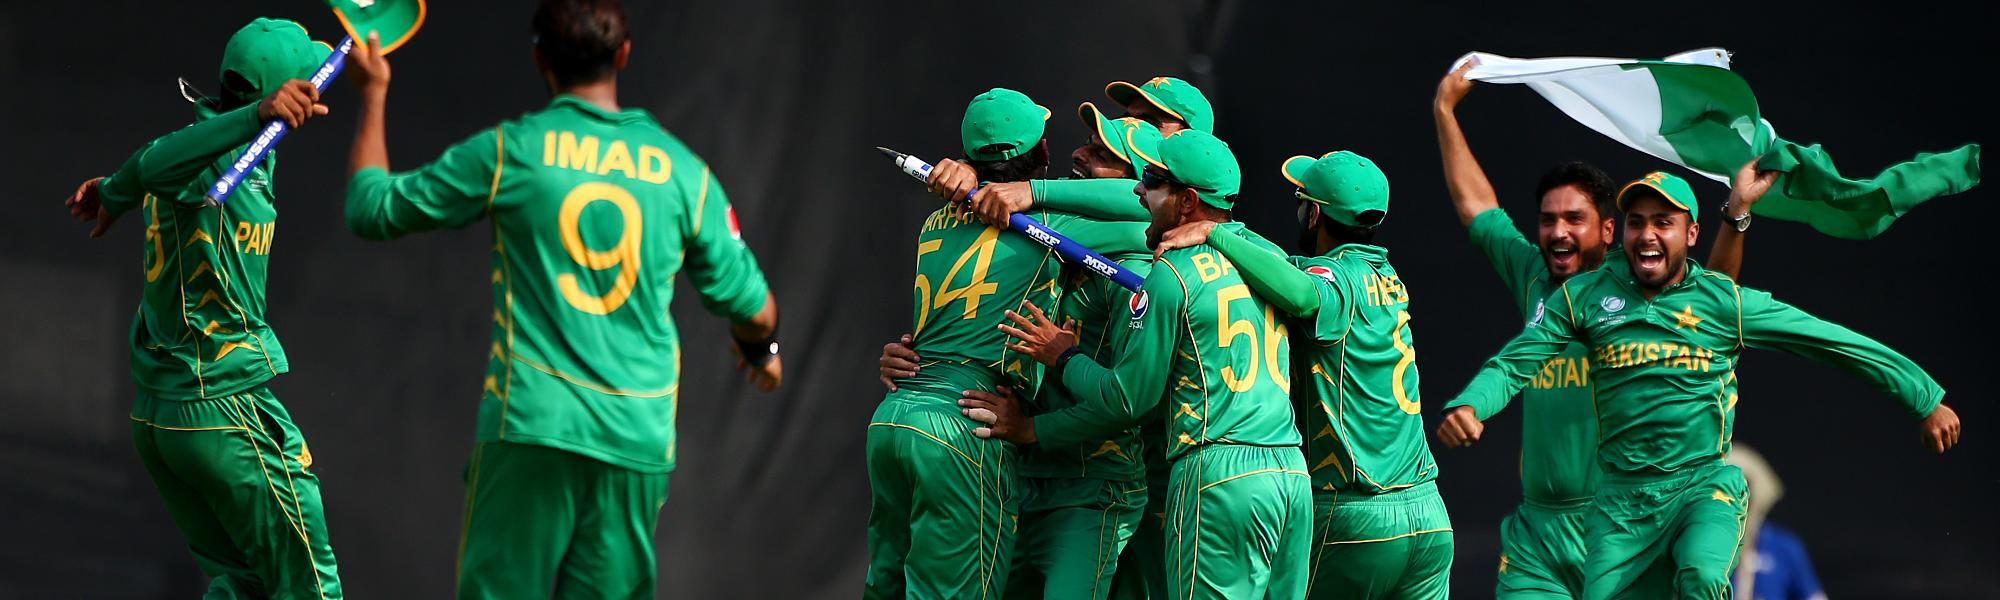 Pakistan celebrating